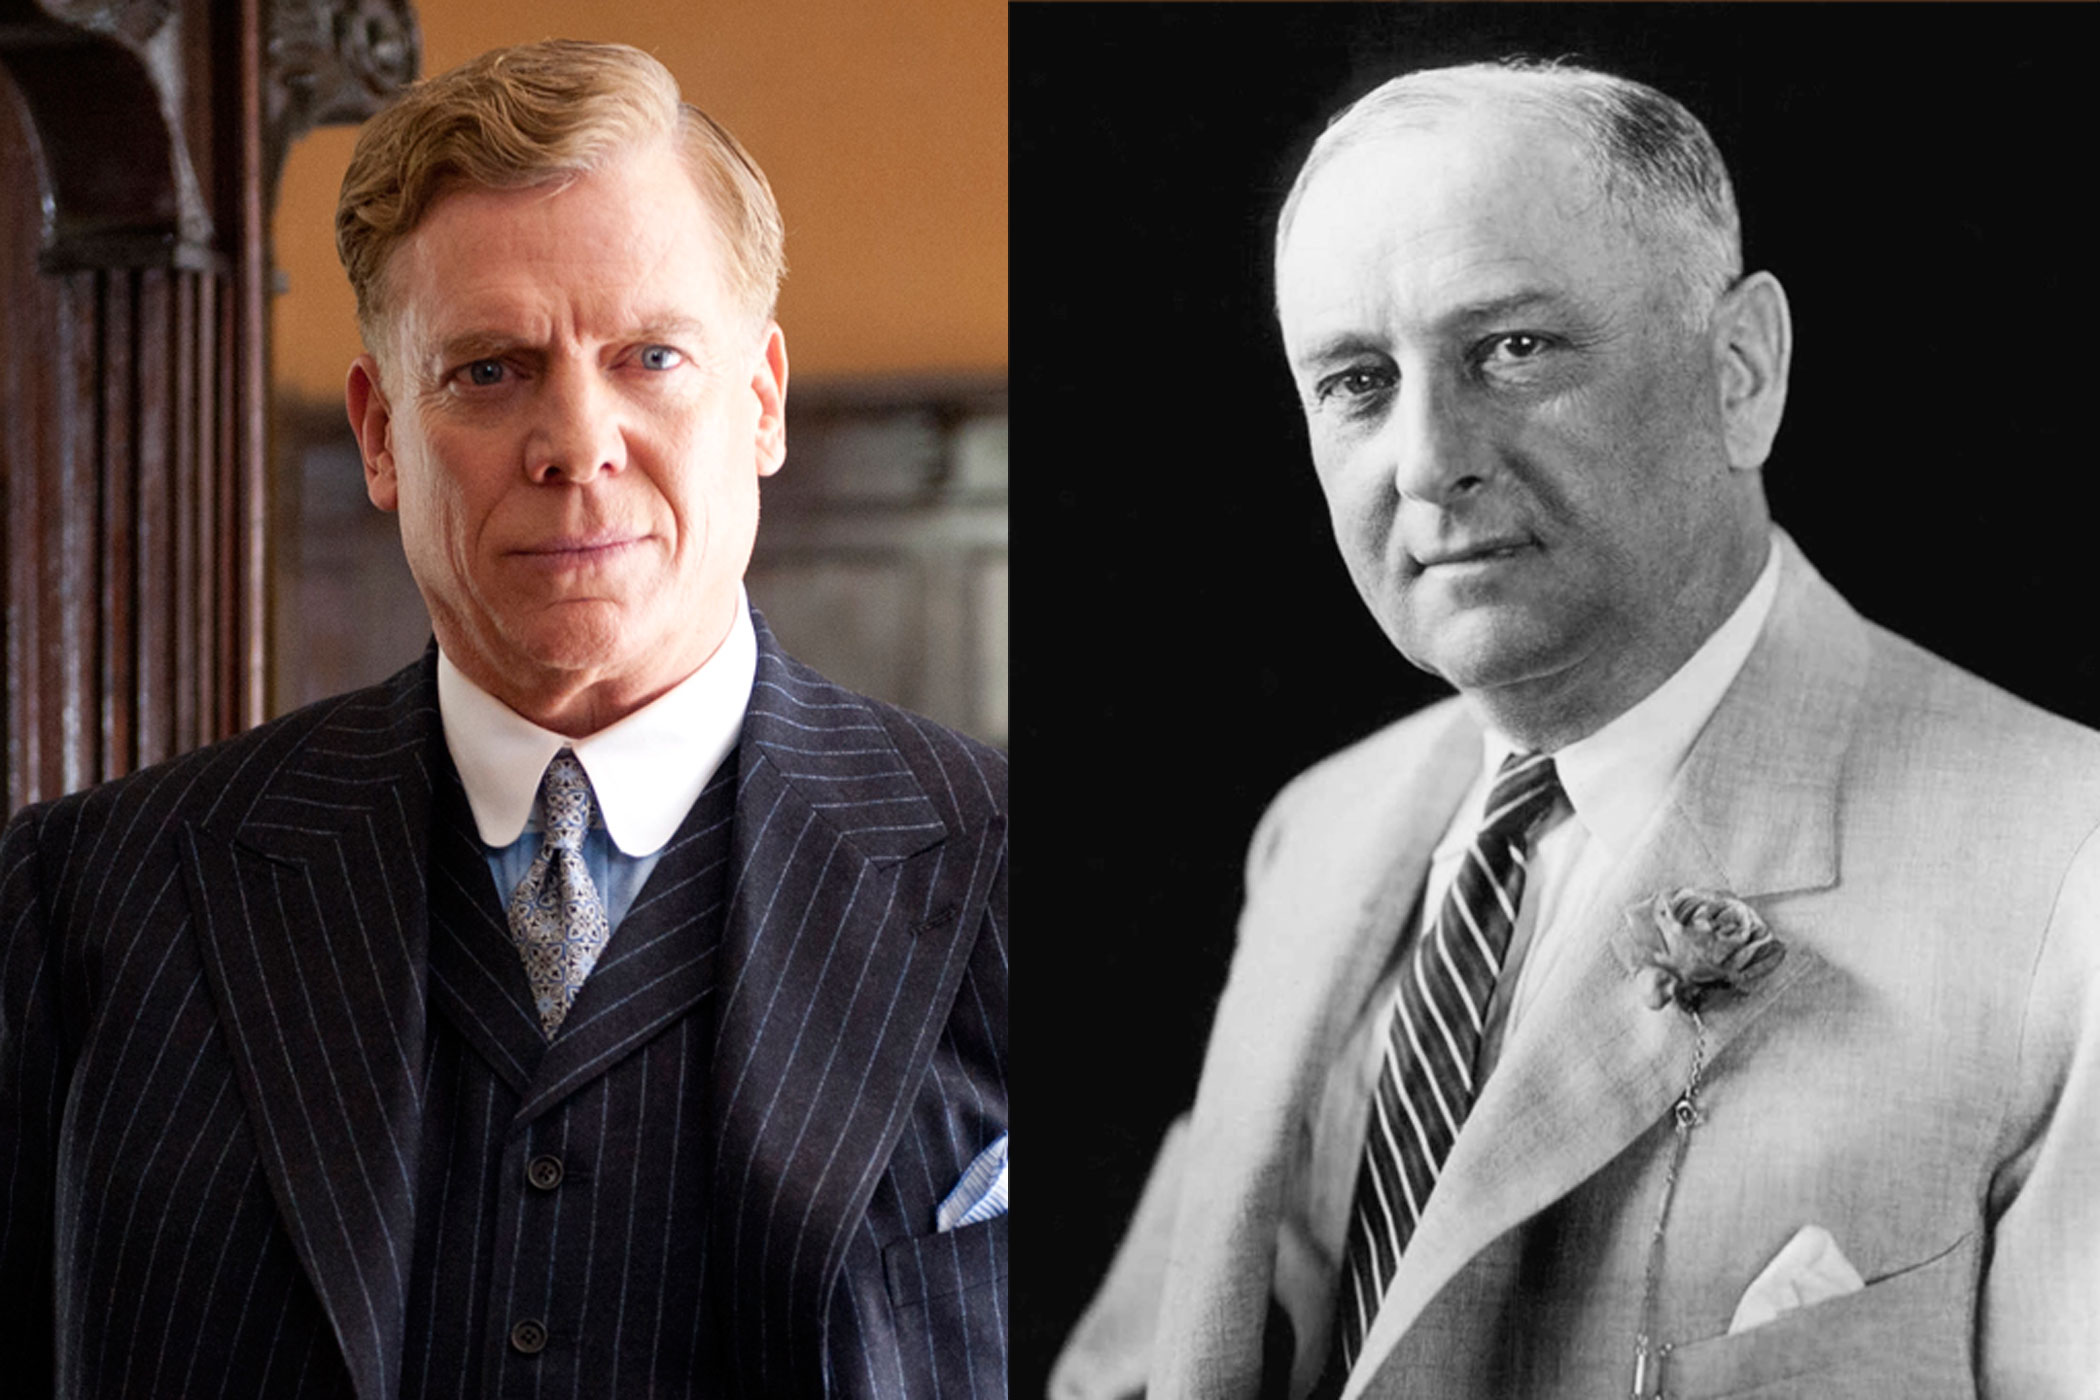 Harry M. Daugherty:                                Christopher McDonald's Harry Daugherty is a pretty good approximation of the real life U.S. Attorney General of the same name, who was indicted, but never jailed, on federal charges of fraud.